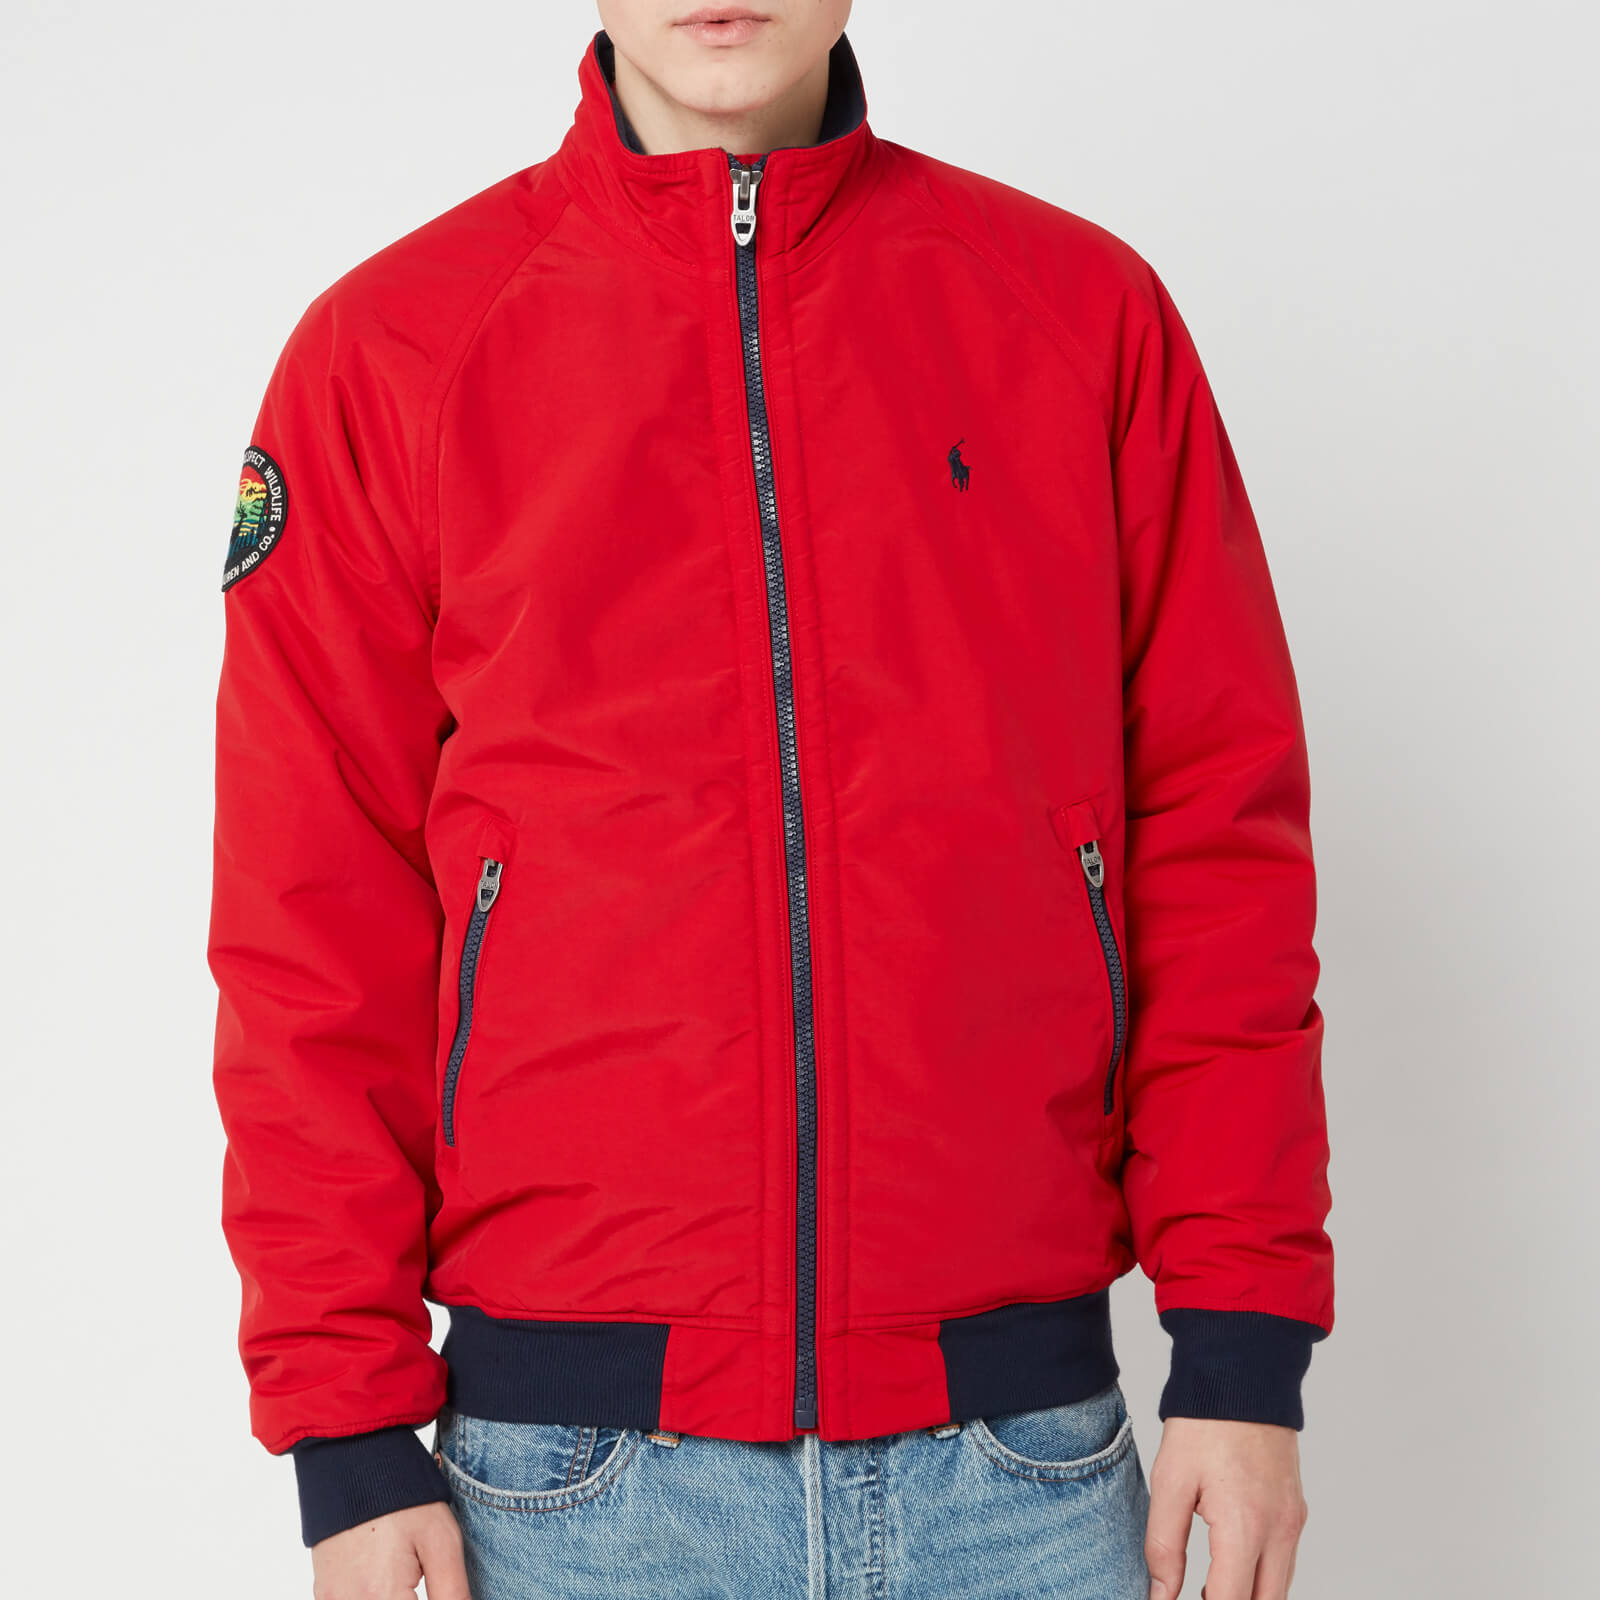 a11cd0b69 Polo Ralph Lauren Men's Bomber Portage Jacket - Rl 2000 Red